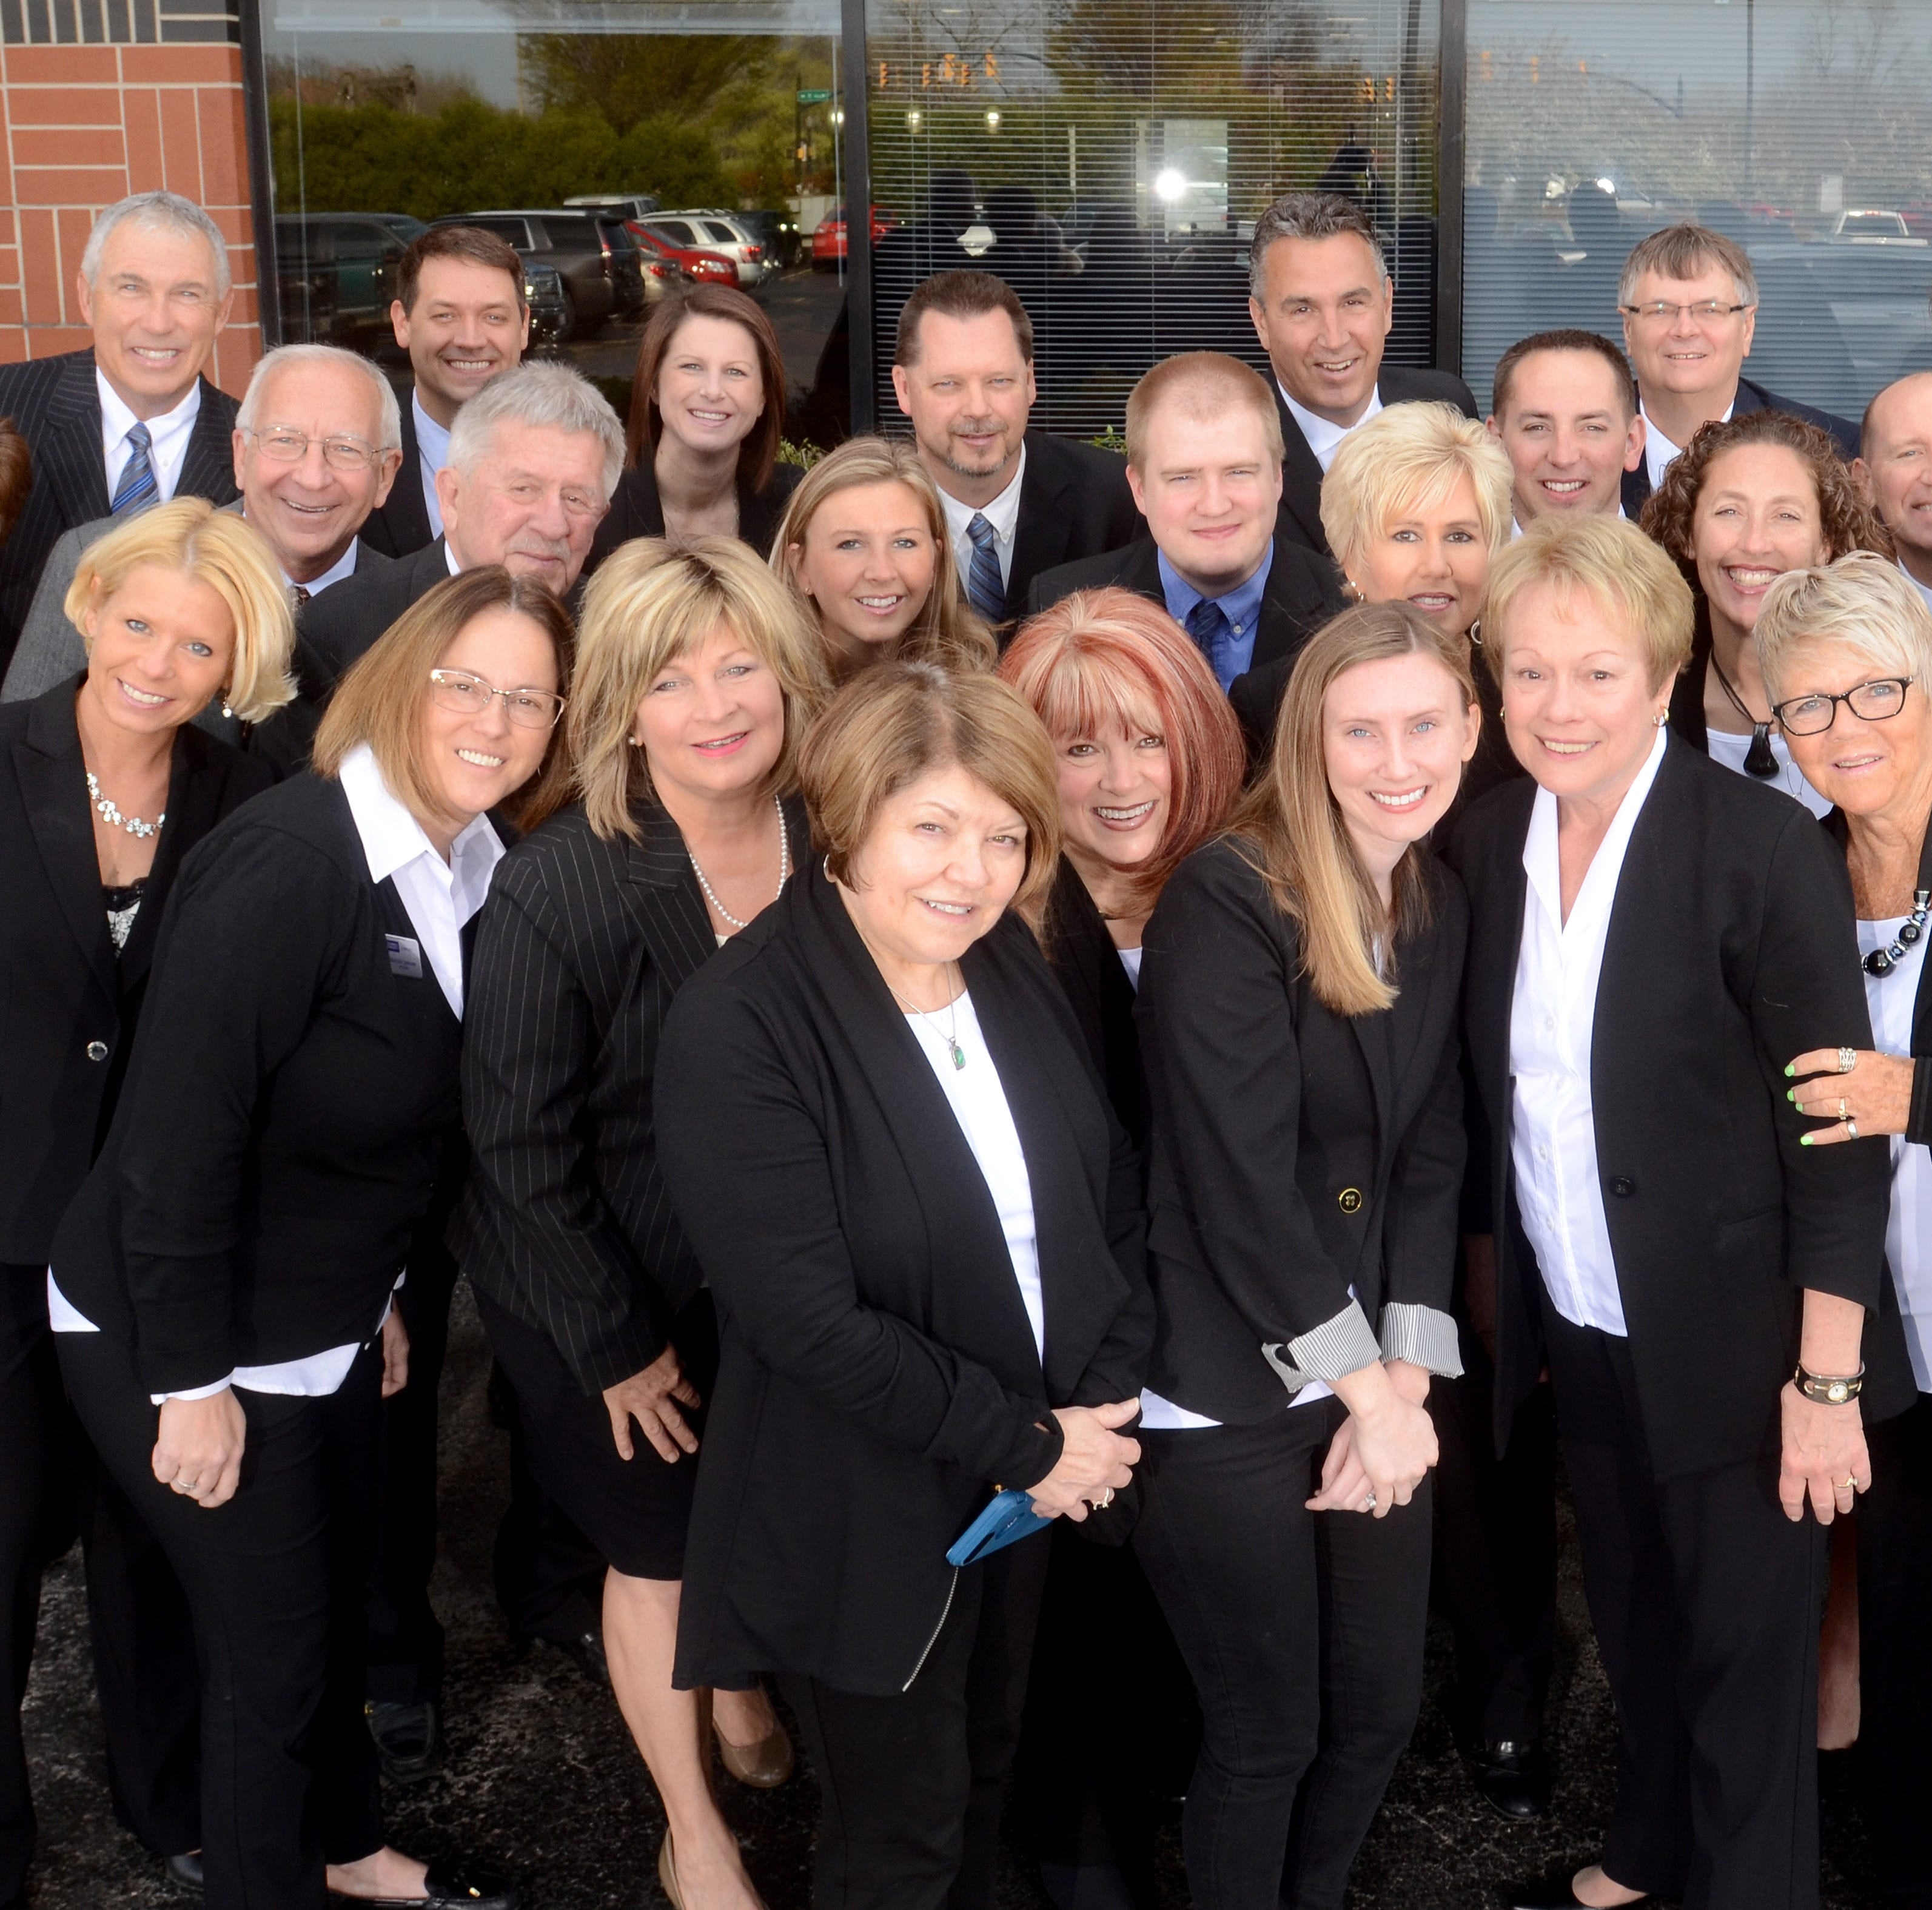 Friends and Neighbors: Coldwell Banker Lunsford announces merger